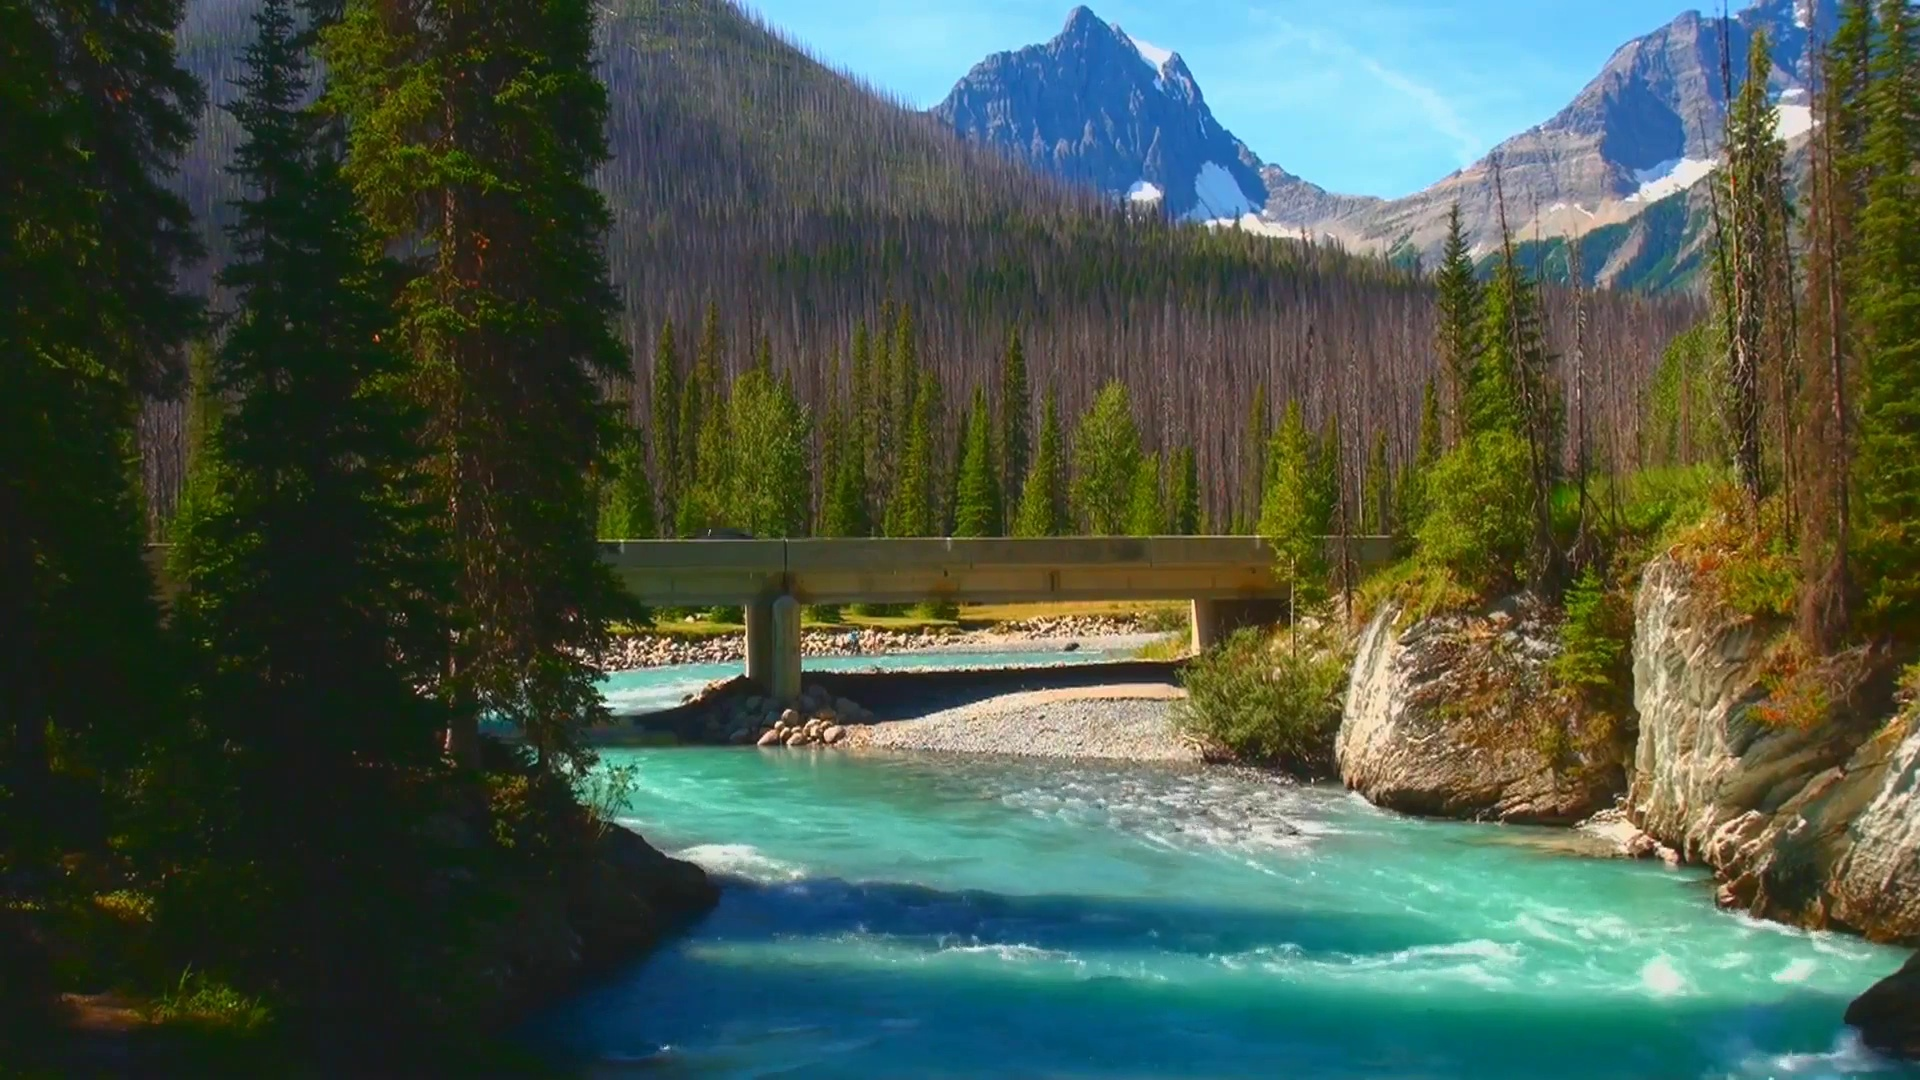 Numa Falls Wallpaper Mp Stetski Displeased With Parks Canada Infrastructure